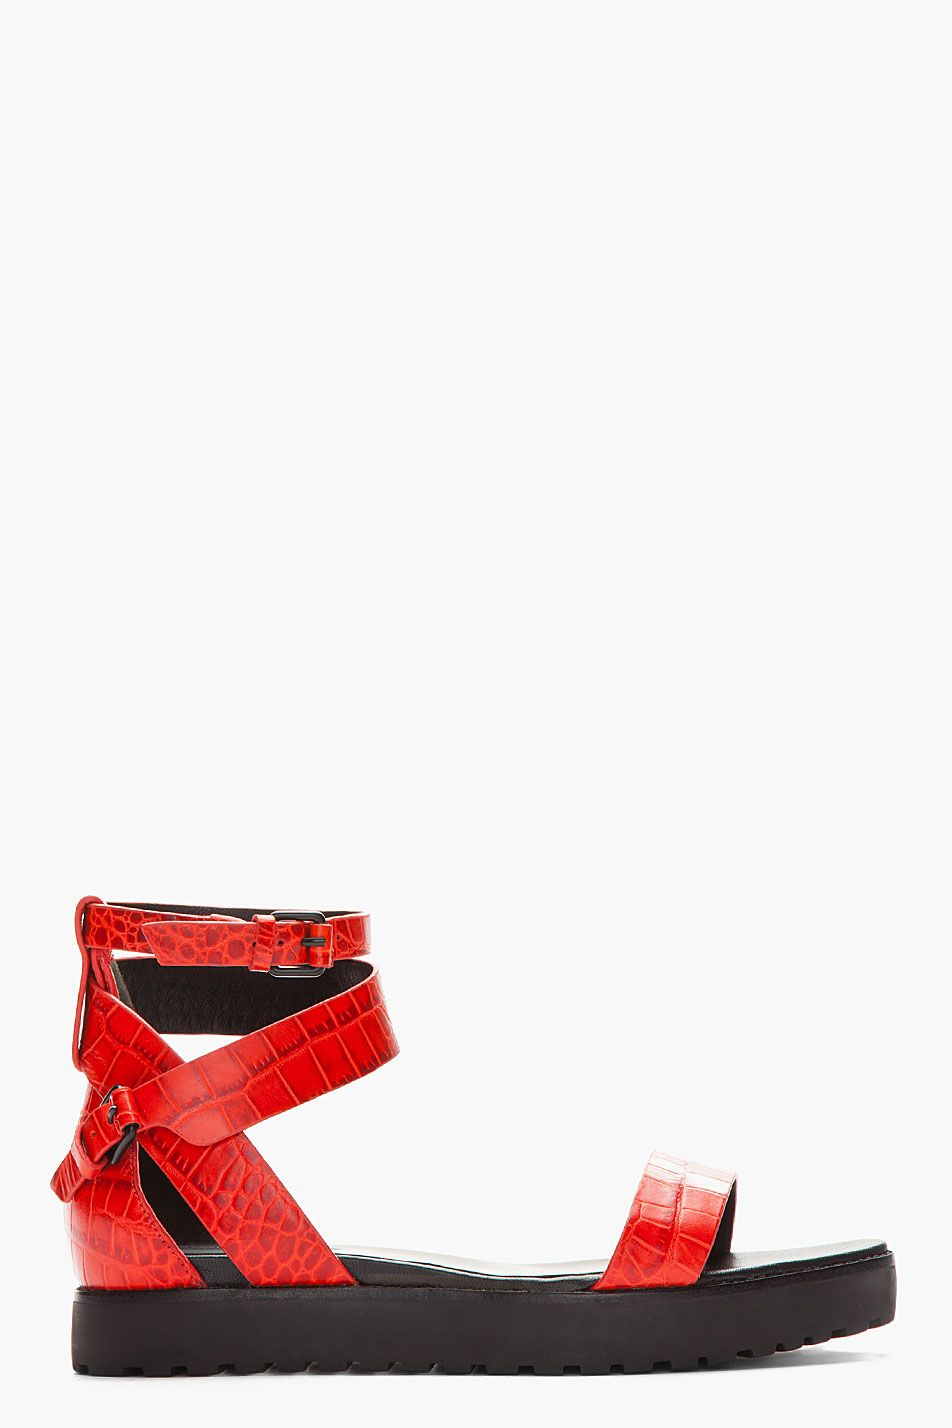 20dcd877d Alexander Wang Red Crocodile Embossed Jade Flat Sandals - Alexander Wang Red  Crocodile Embossed Jade Flat Sandals Alexander Wang Leather sandals in red.